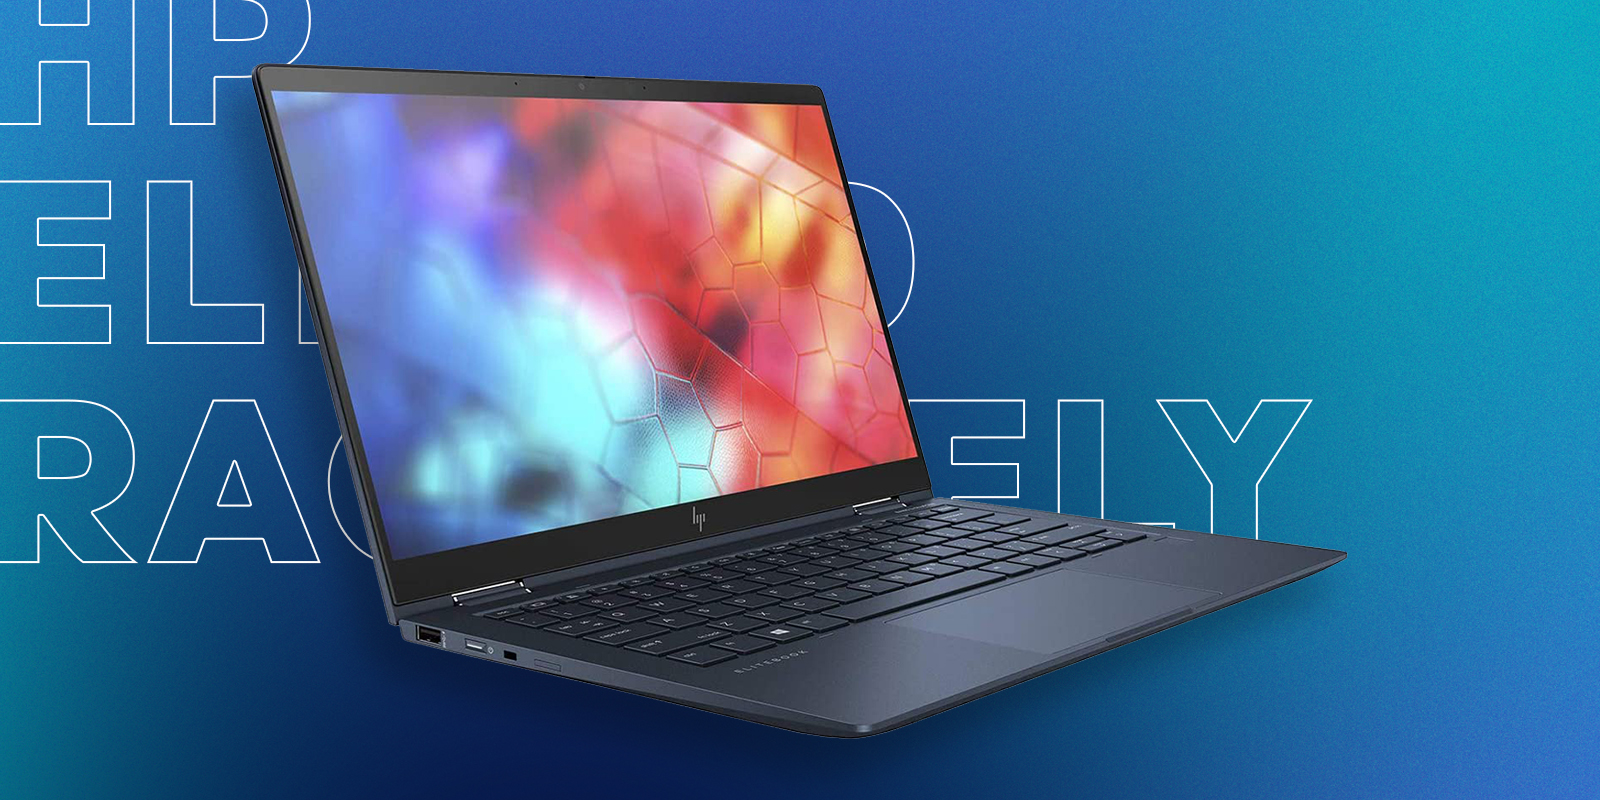 HP Elite Dragonfly Best 2-in-1 laptop in 2021 for Graphic Design